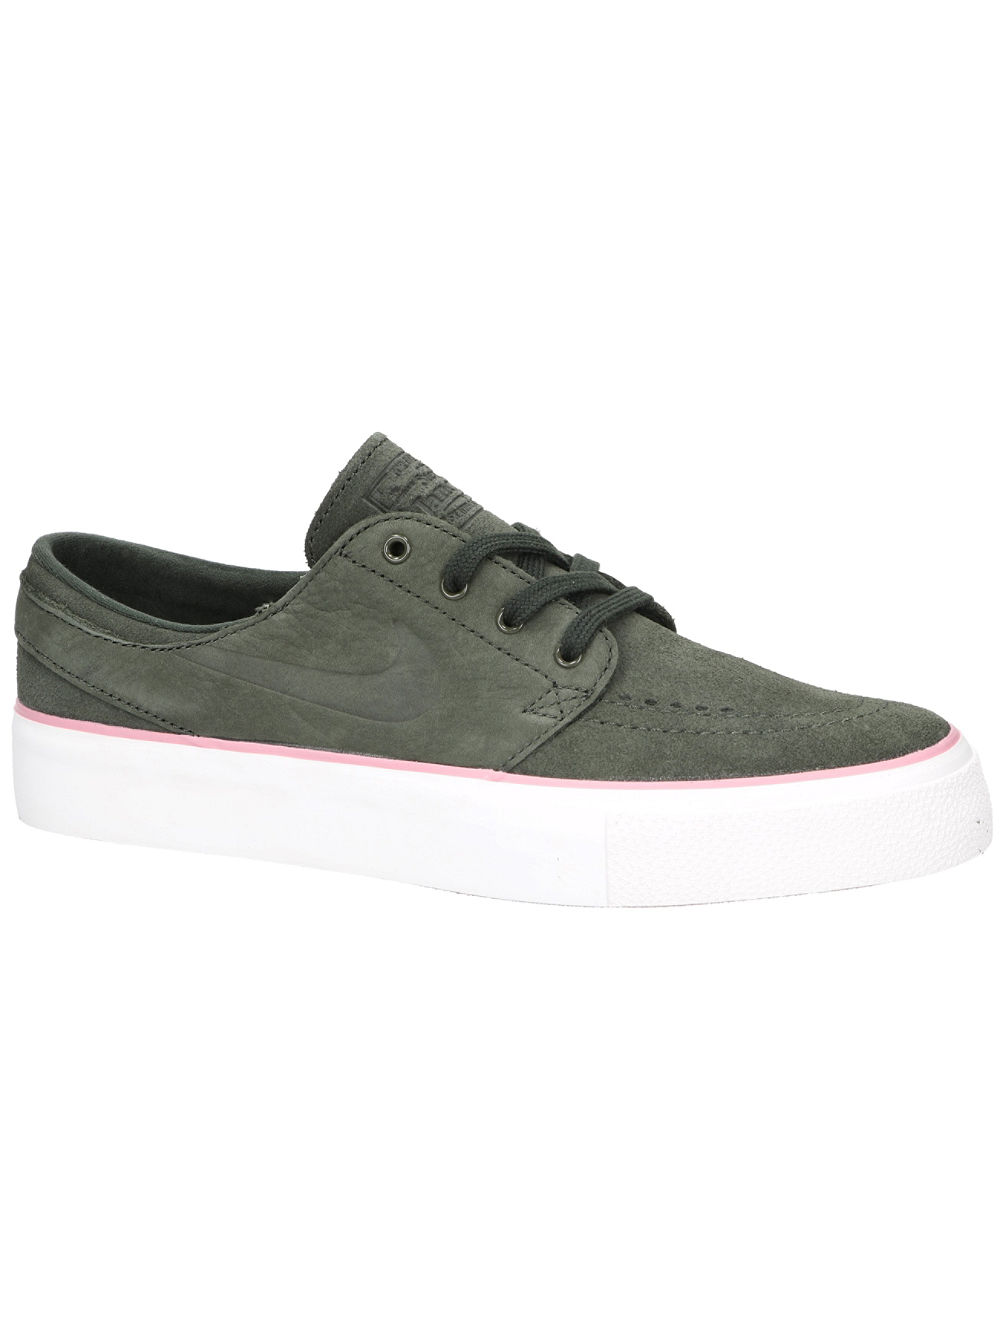 new product 61e7b c5476 Nike SB Zoom Stefan Janoski HT Skate Shoes